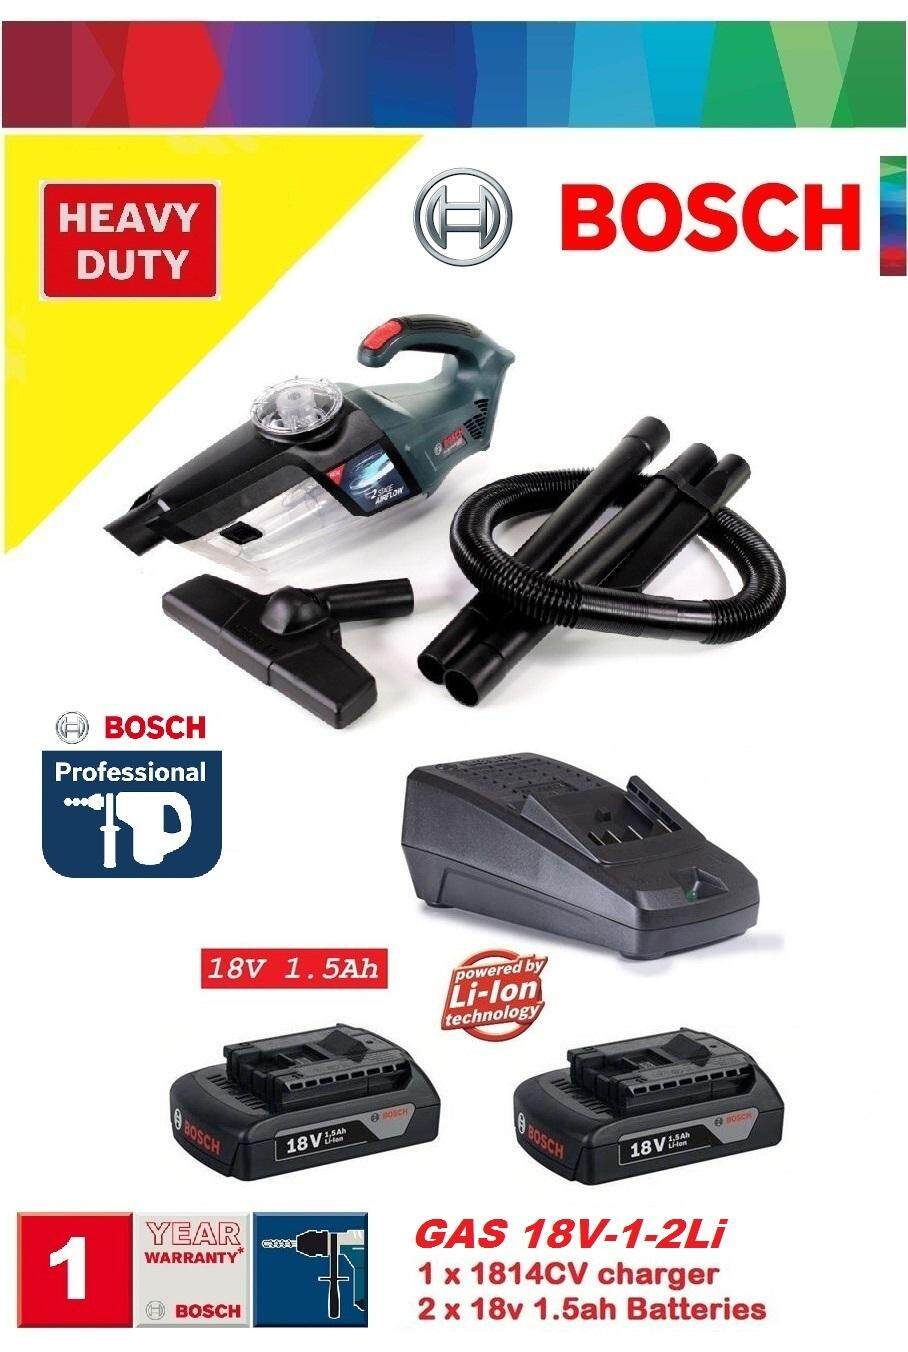 Bosch GAS 18V-1-2Li Cordless Dust Extractor Cleaner Set, Cordless Vacuum Cleaner